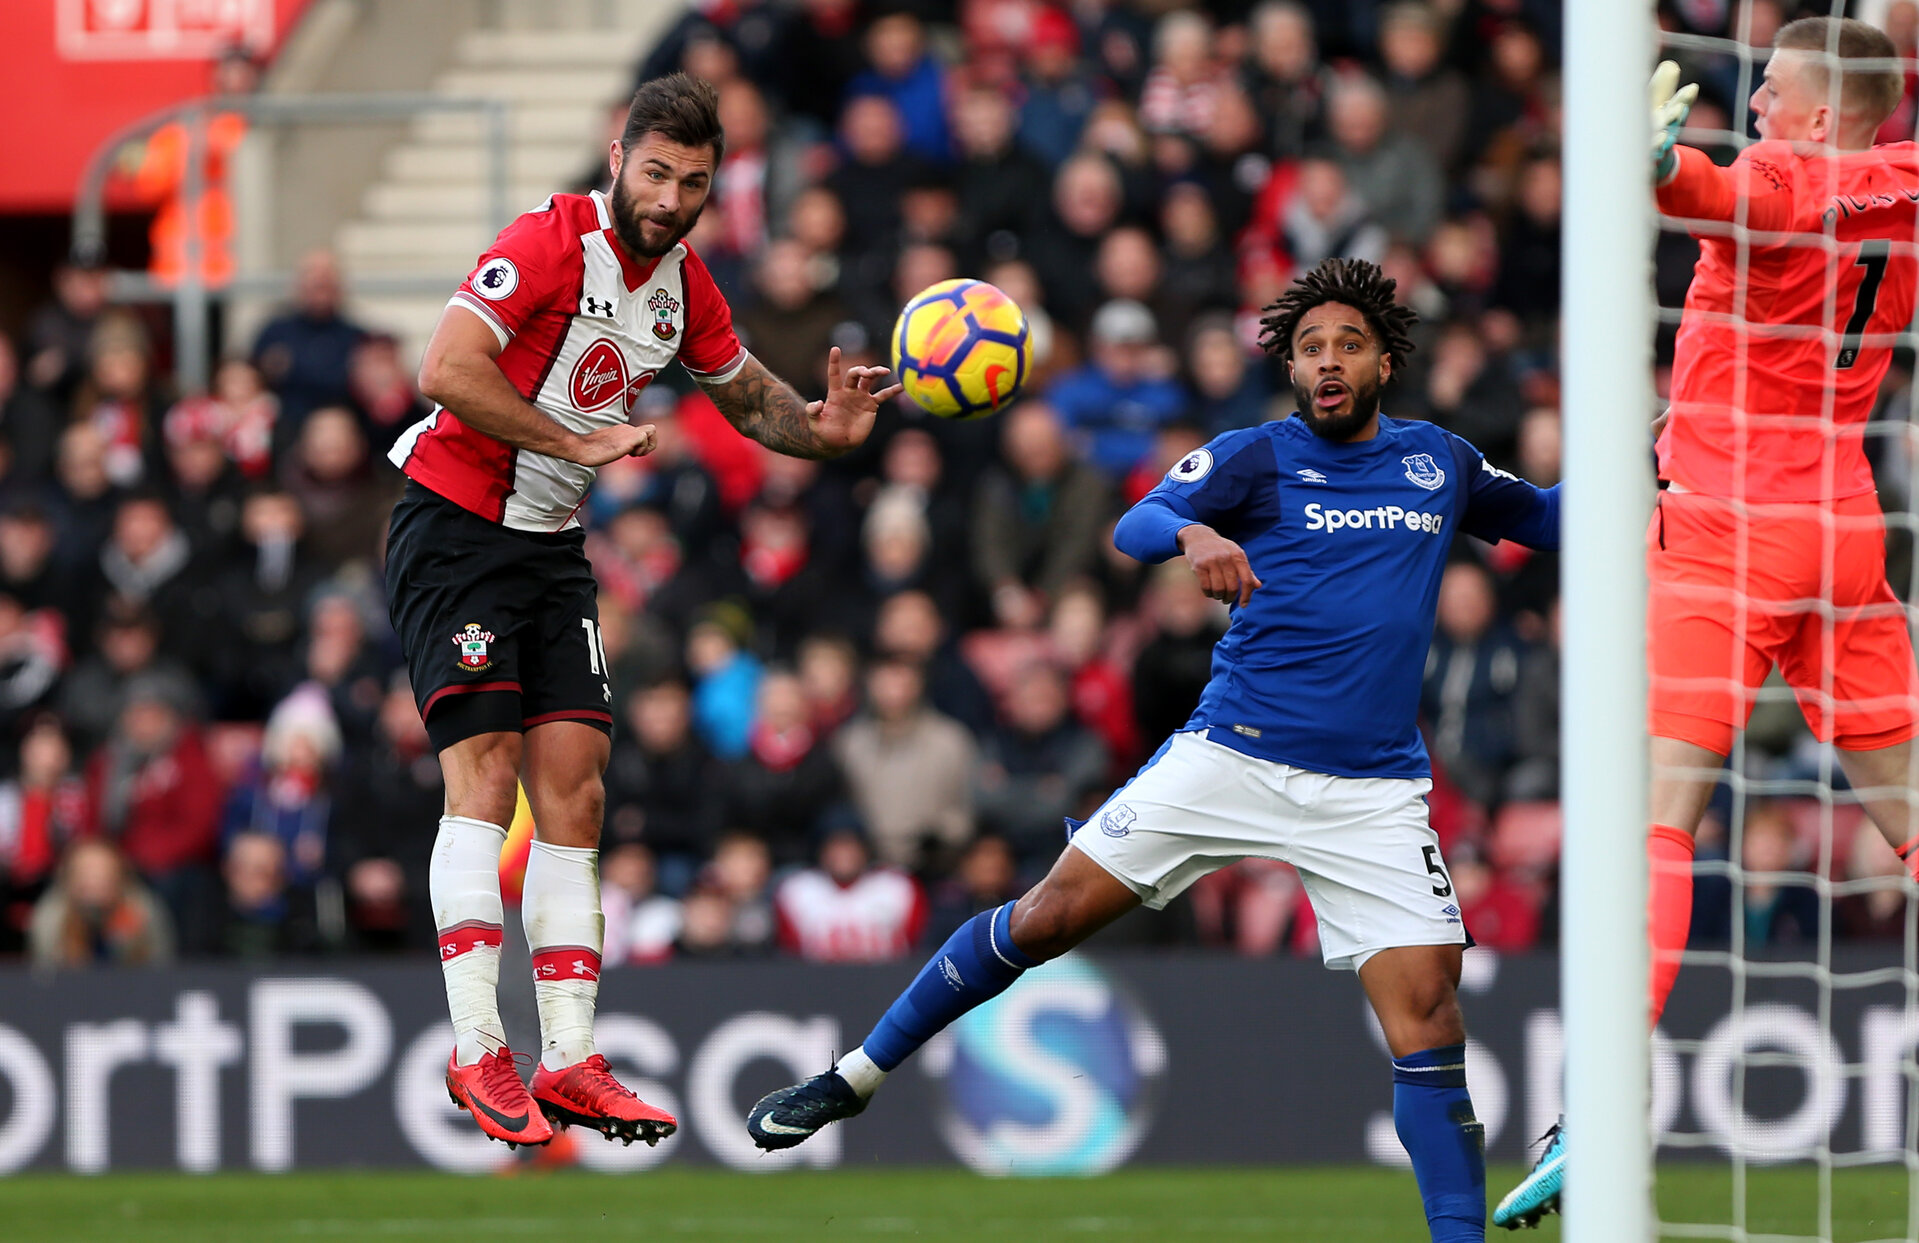 SOUTHAMPTON, ENGLAND - NOVEMBER 26: during the Premier League match between Southampton and Everton at St Mary's Stadium on November 26, 2017 in Southampton, England. (Photo by Chris Moorhouse/Southampton FC via Getty Images)